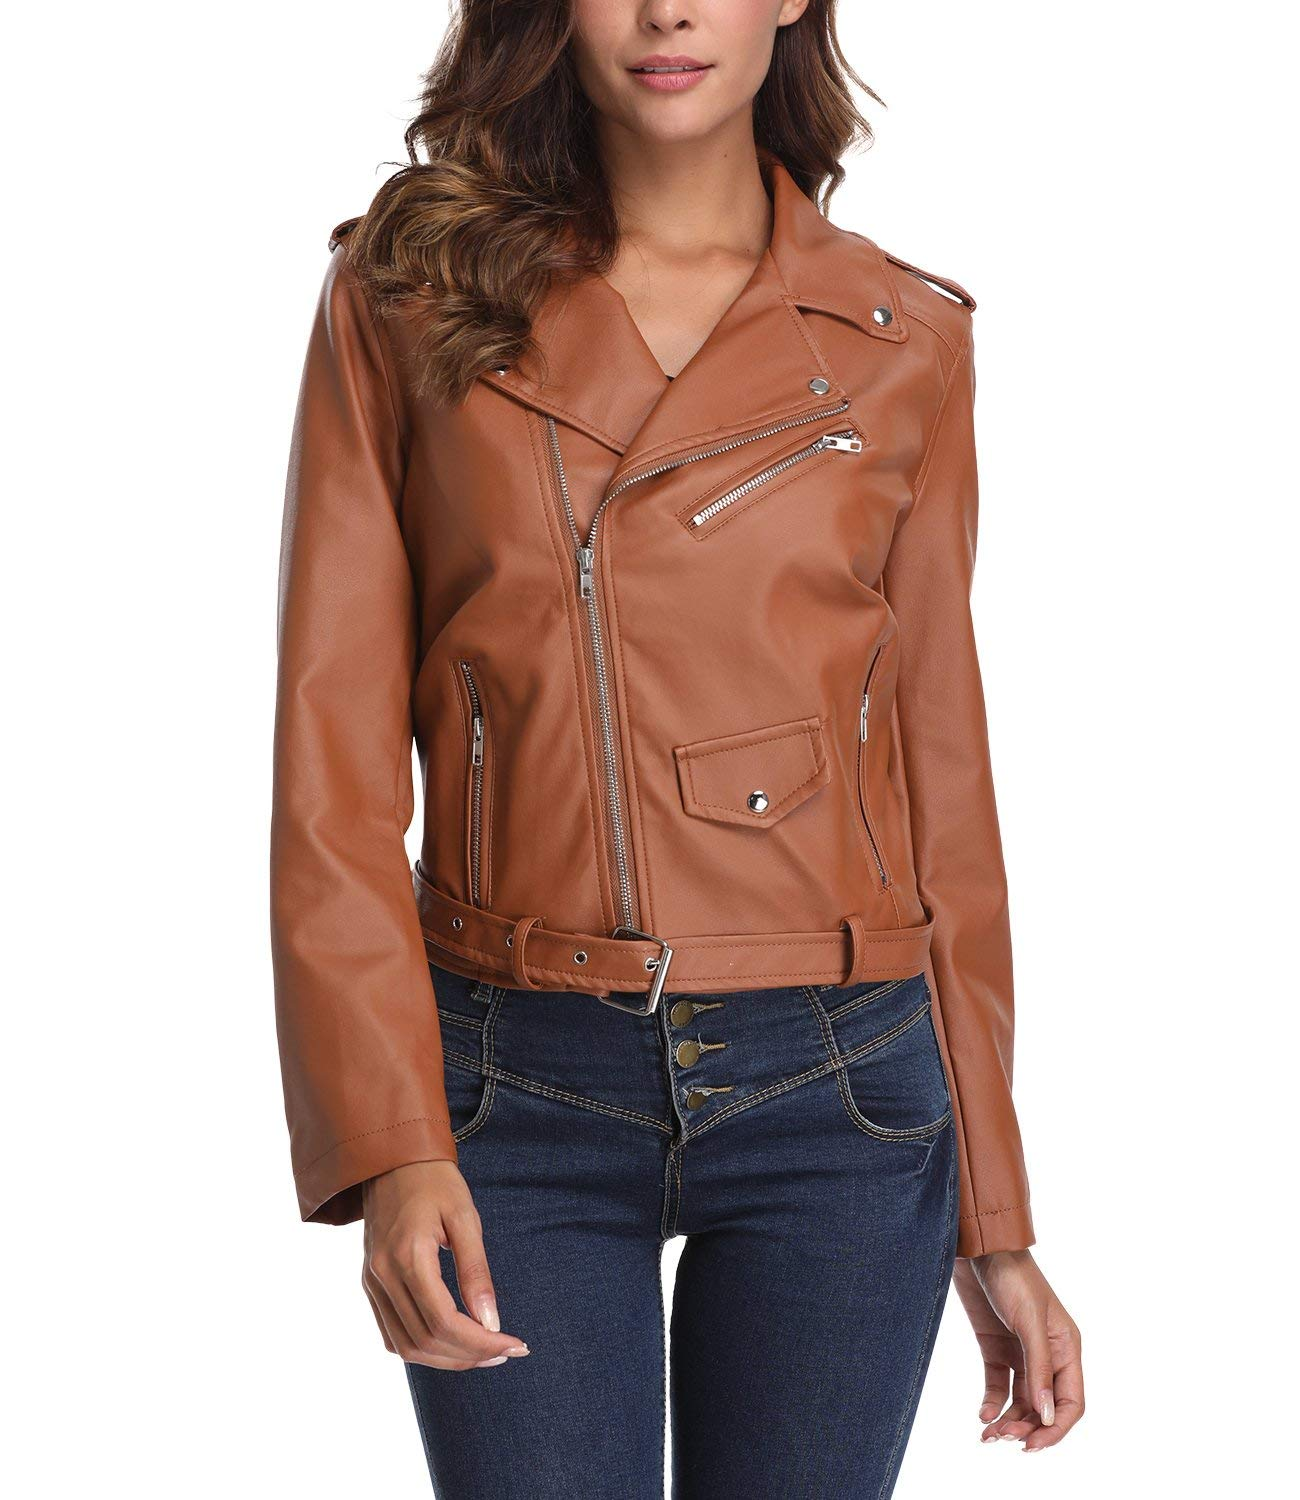 Chenghe Women's Faux Leather Motorcycle Zip up Short Bomber Jacket (Large, Brown)